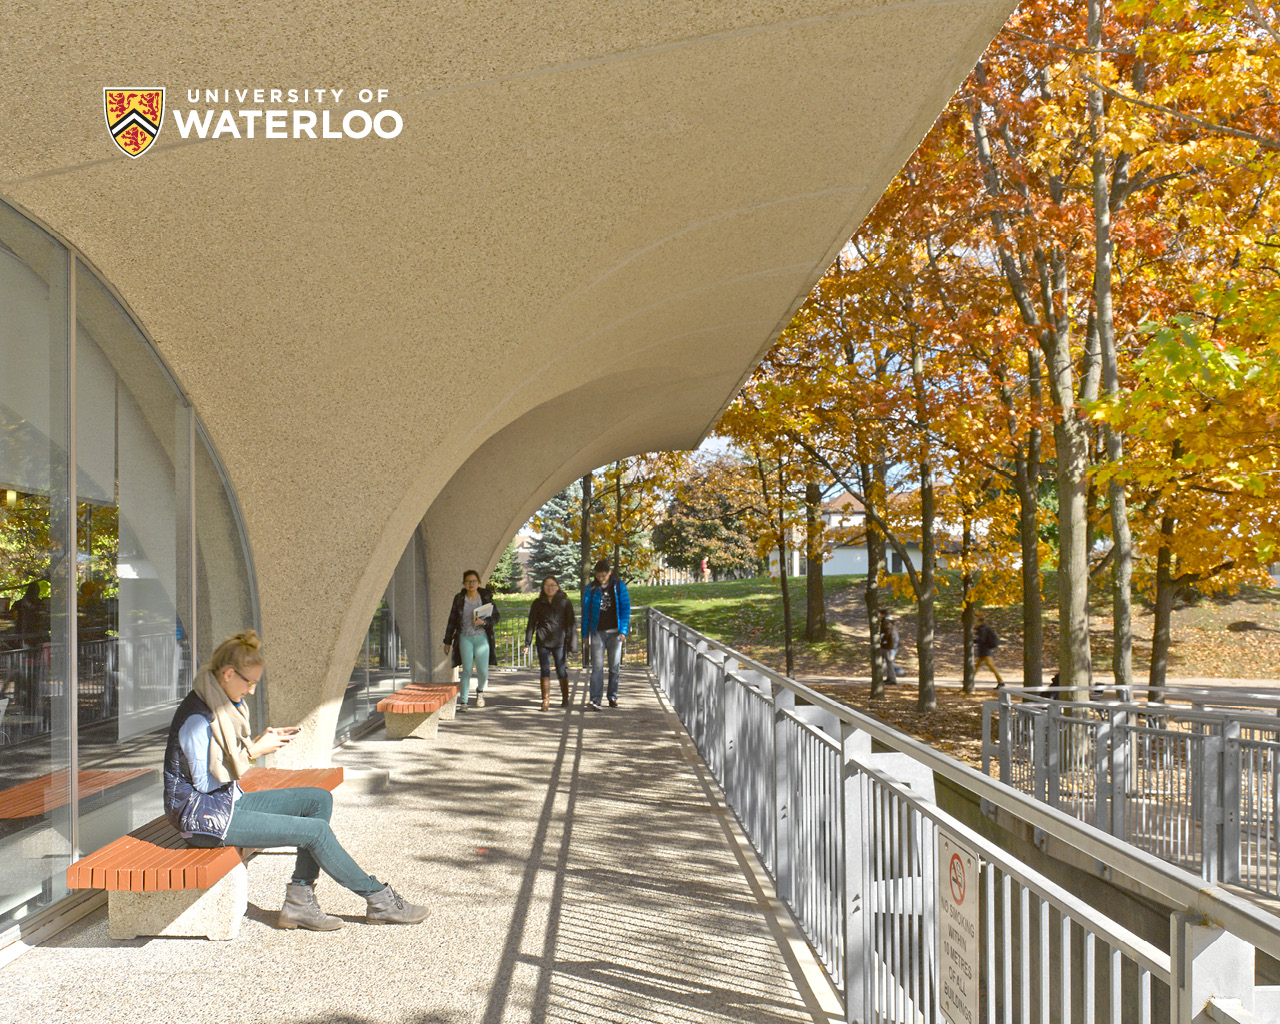 University Of Waterloo: University Of Waterloo Wallpapers